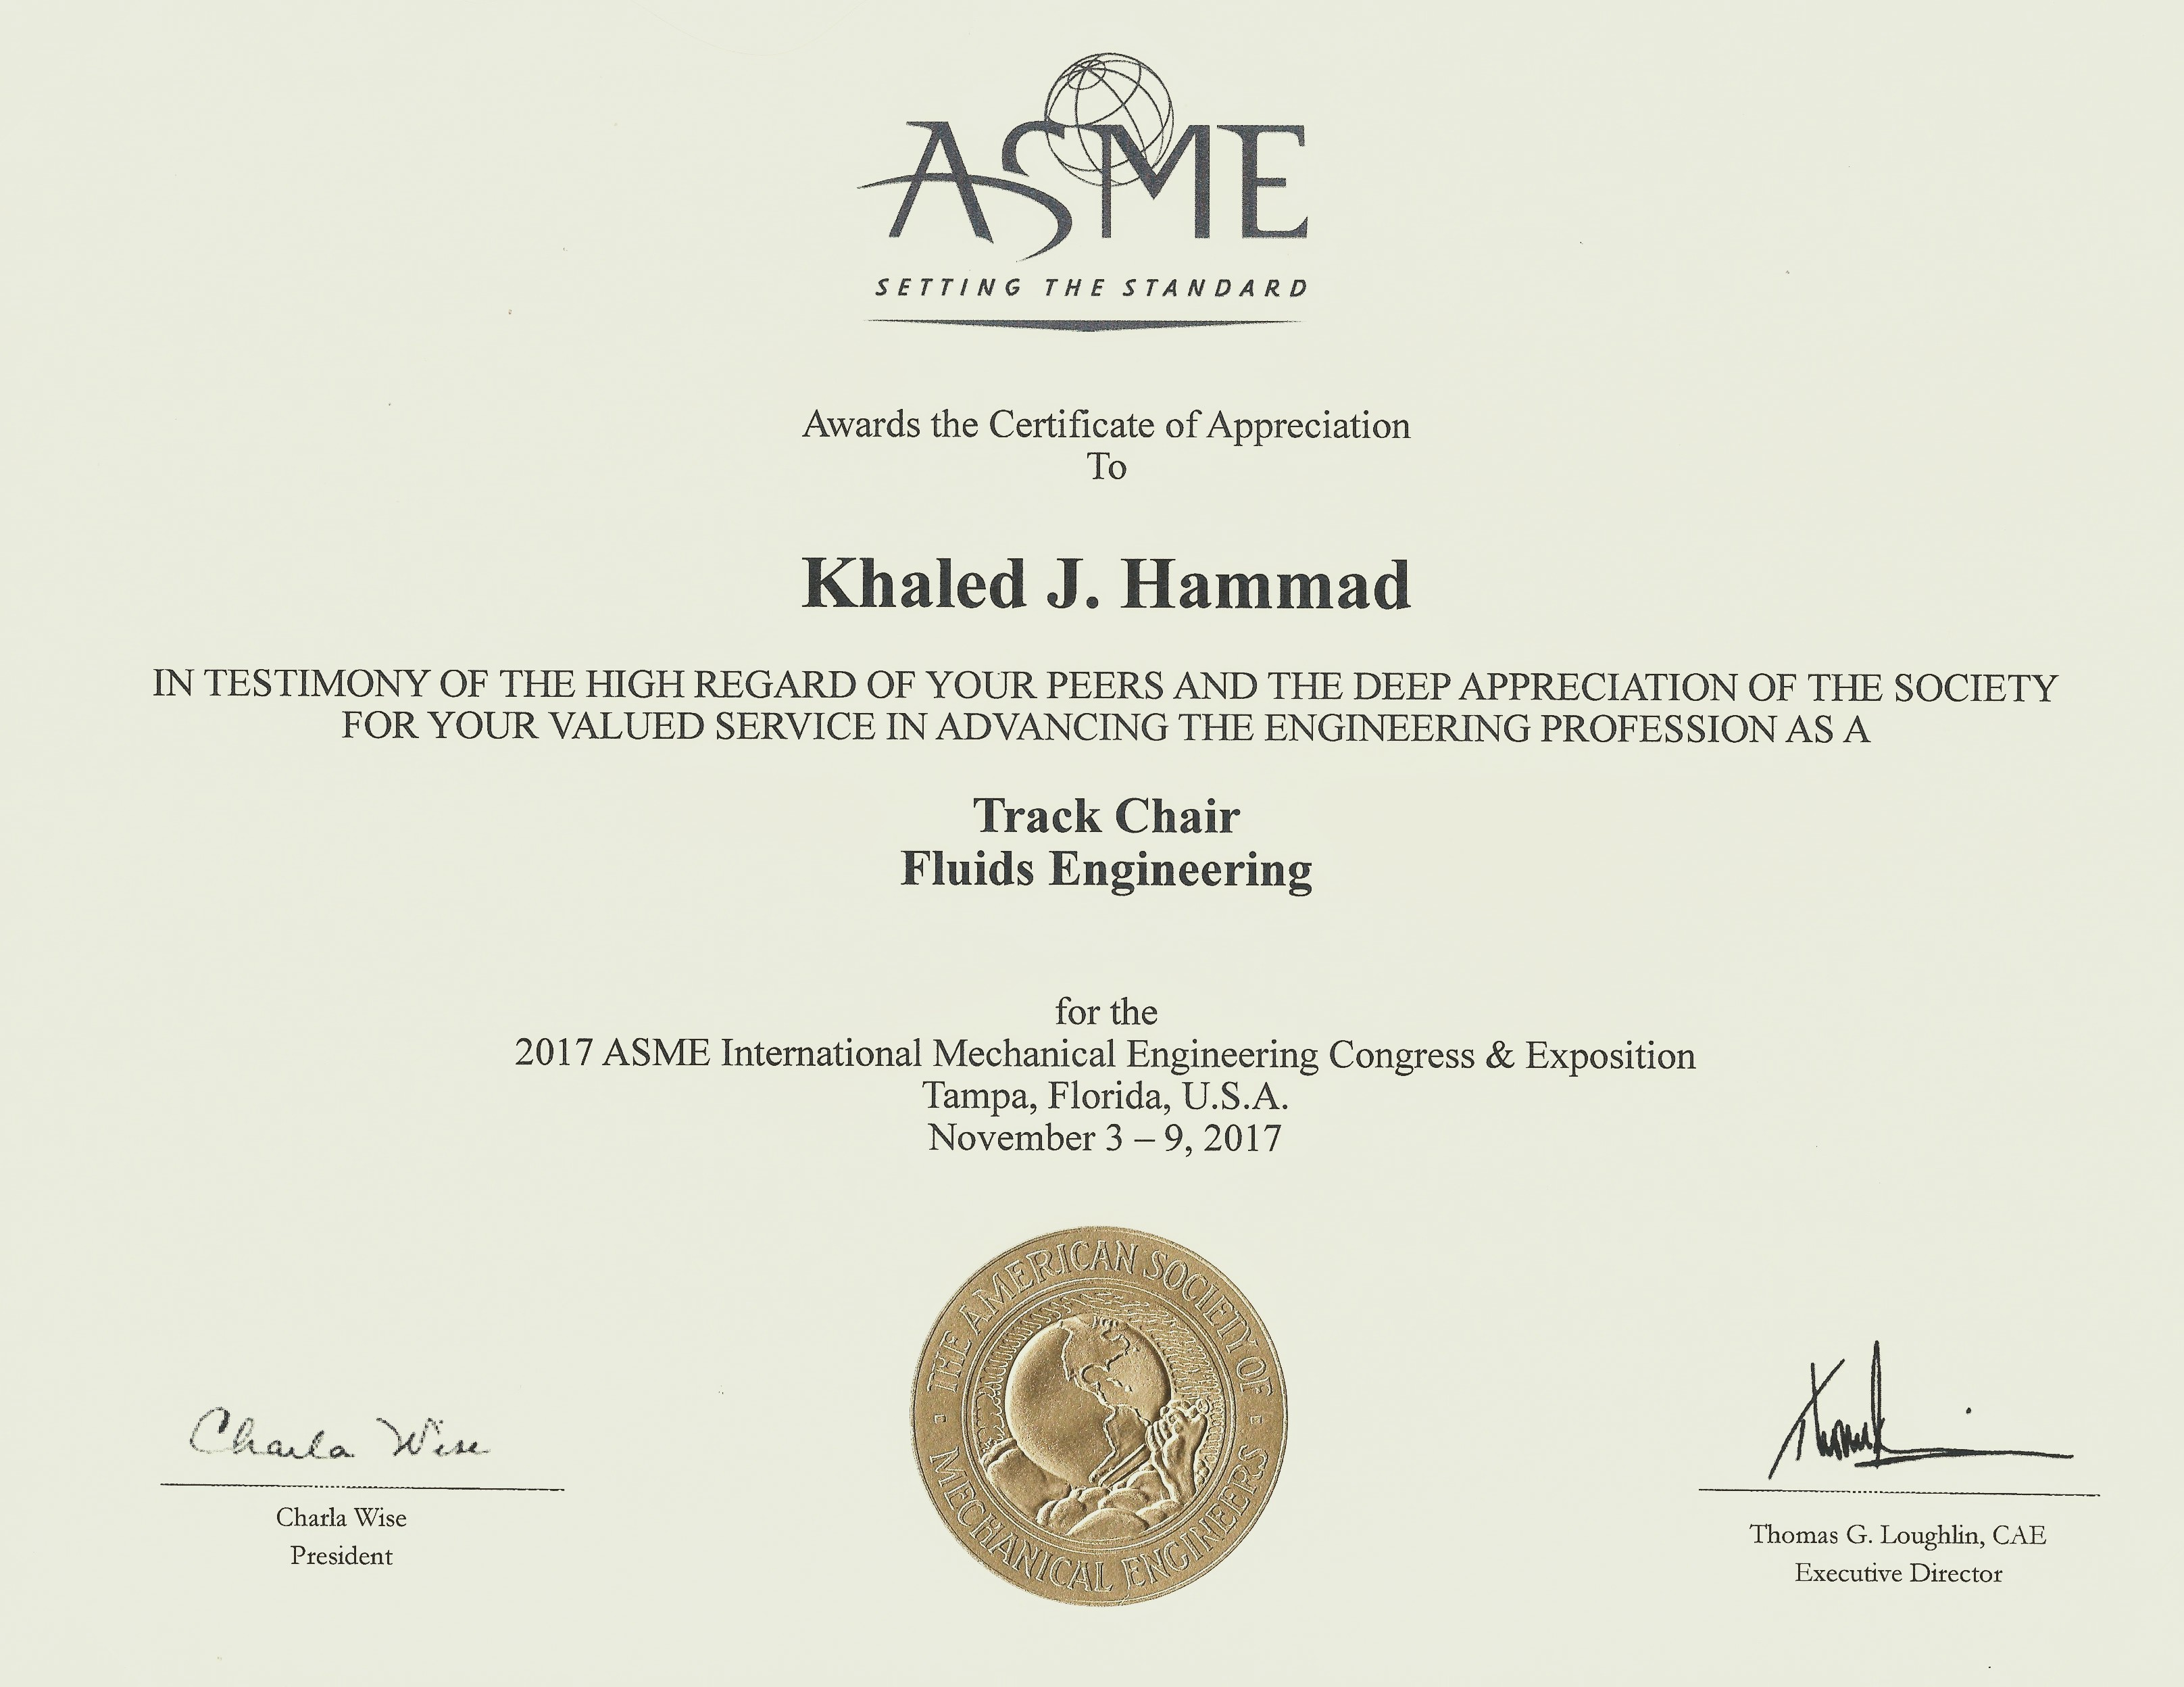 Ccsu khaled hammad american society of mechanical engineers asme certificate of appreciation for valued services in advancing the engineering profession as the xflitez Gallery